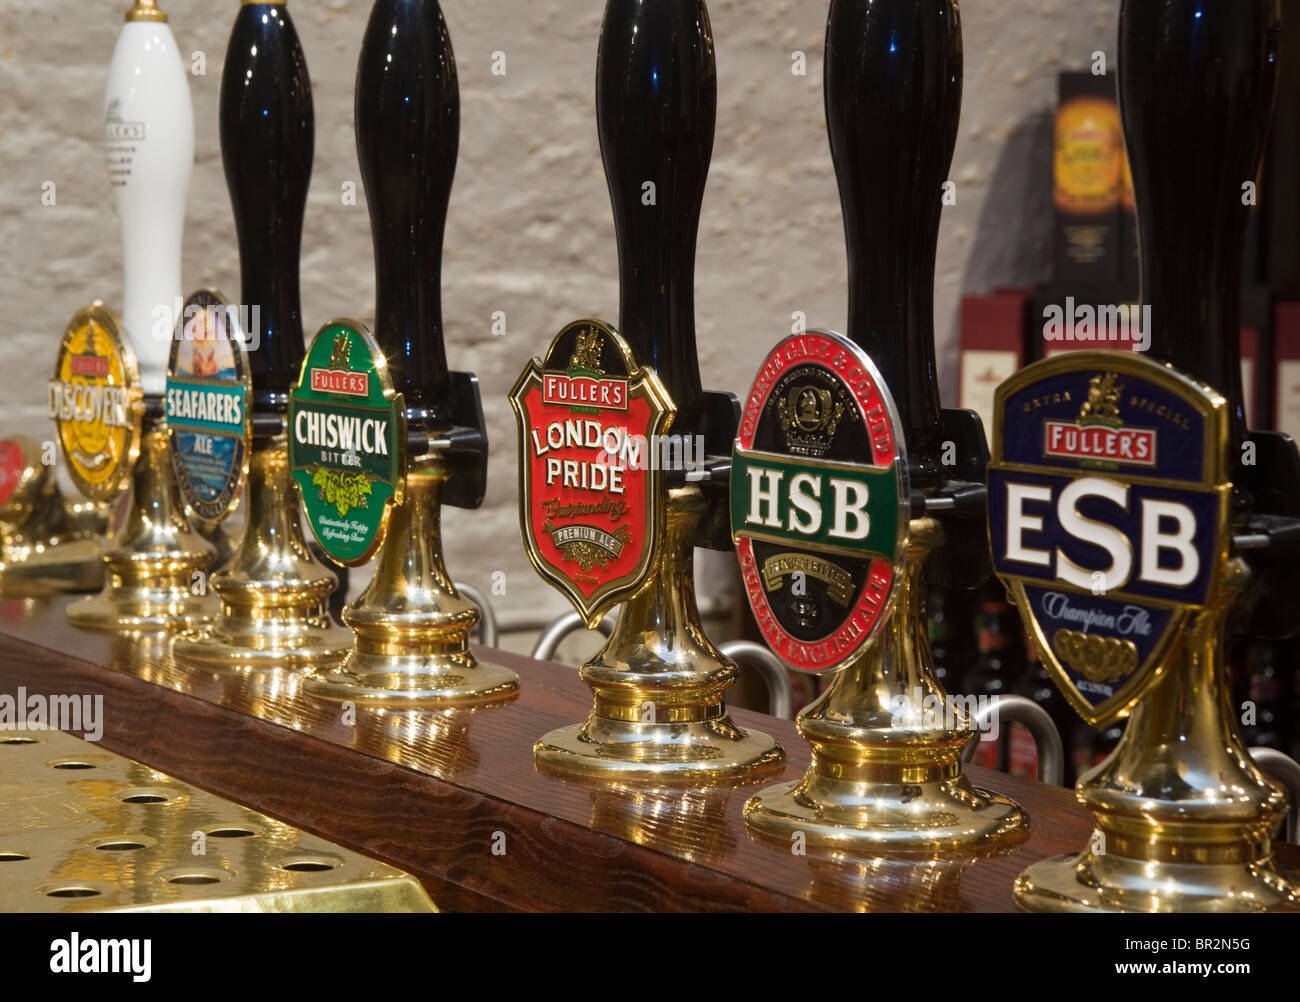 Fullers Griffin Brewery Chiswick London - Stock Image